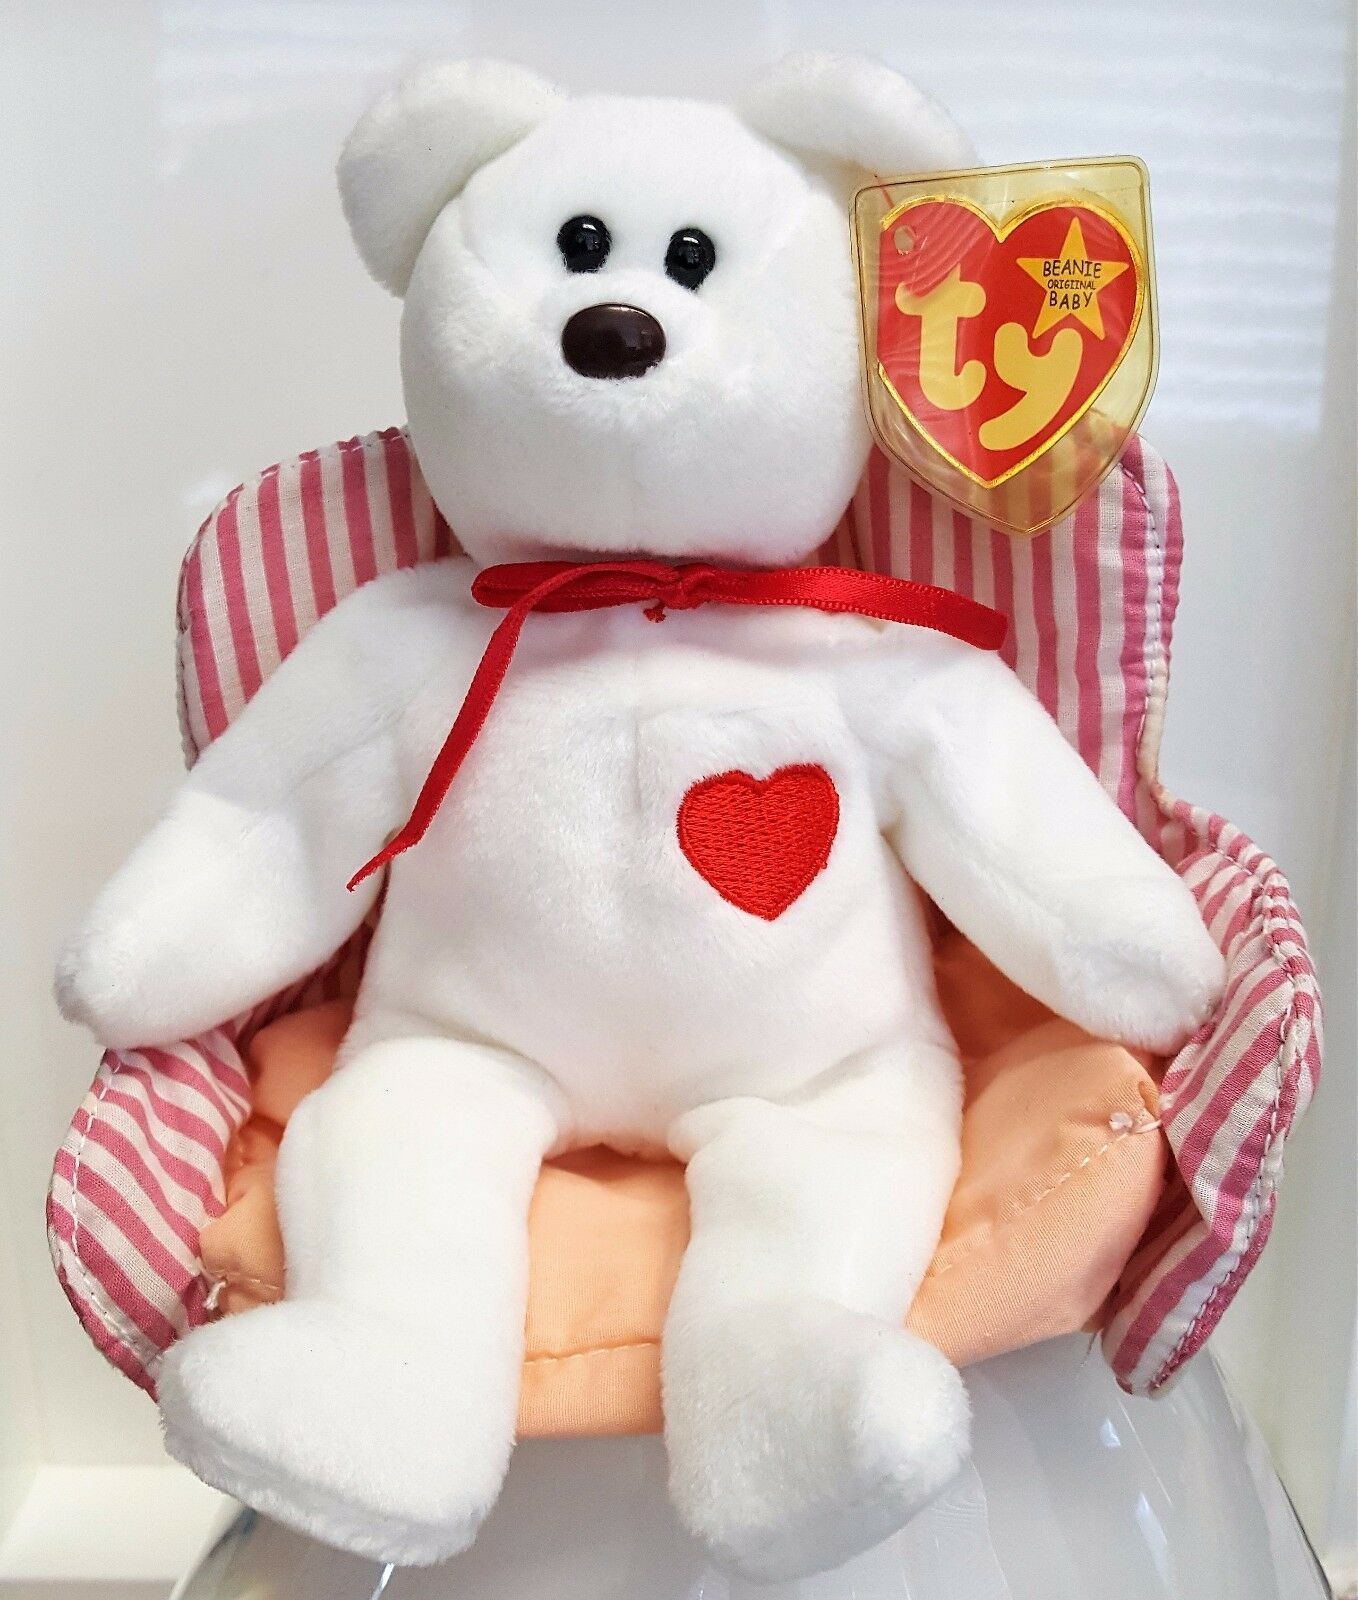 51441091cd7 The Unique Baby Beanie Baby Unique Valentino of 1993 (24 years old ...